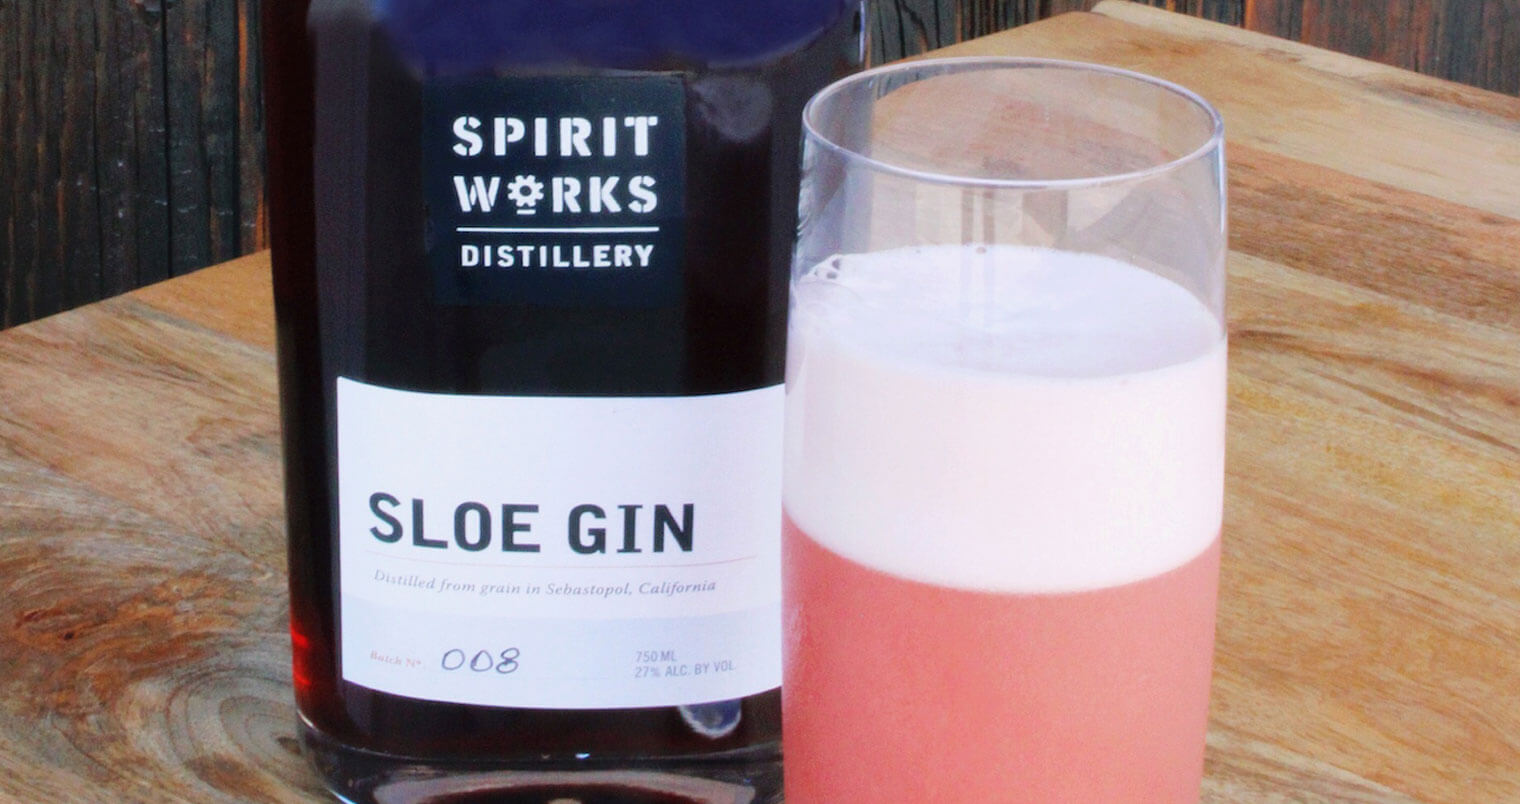 Spirit Works Distillery Sloe Gin Fizz, cocktail recipes, sprit works distillery, featured image